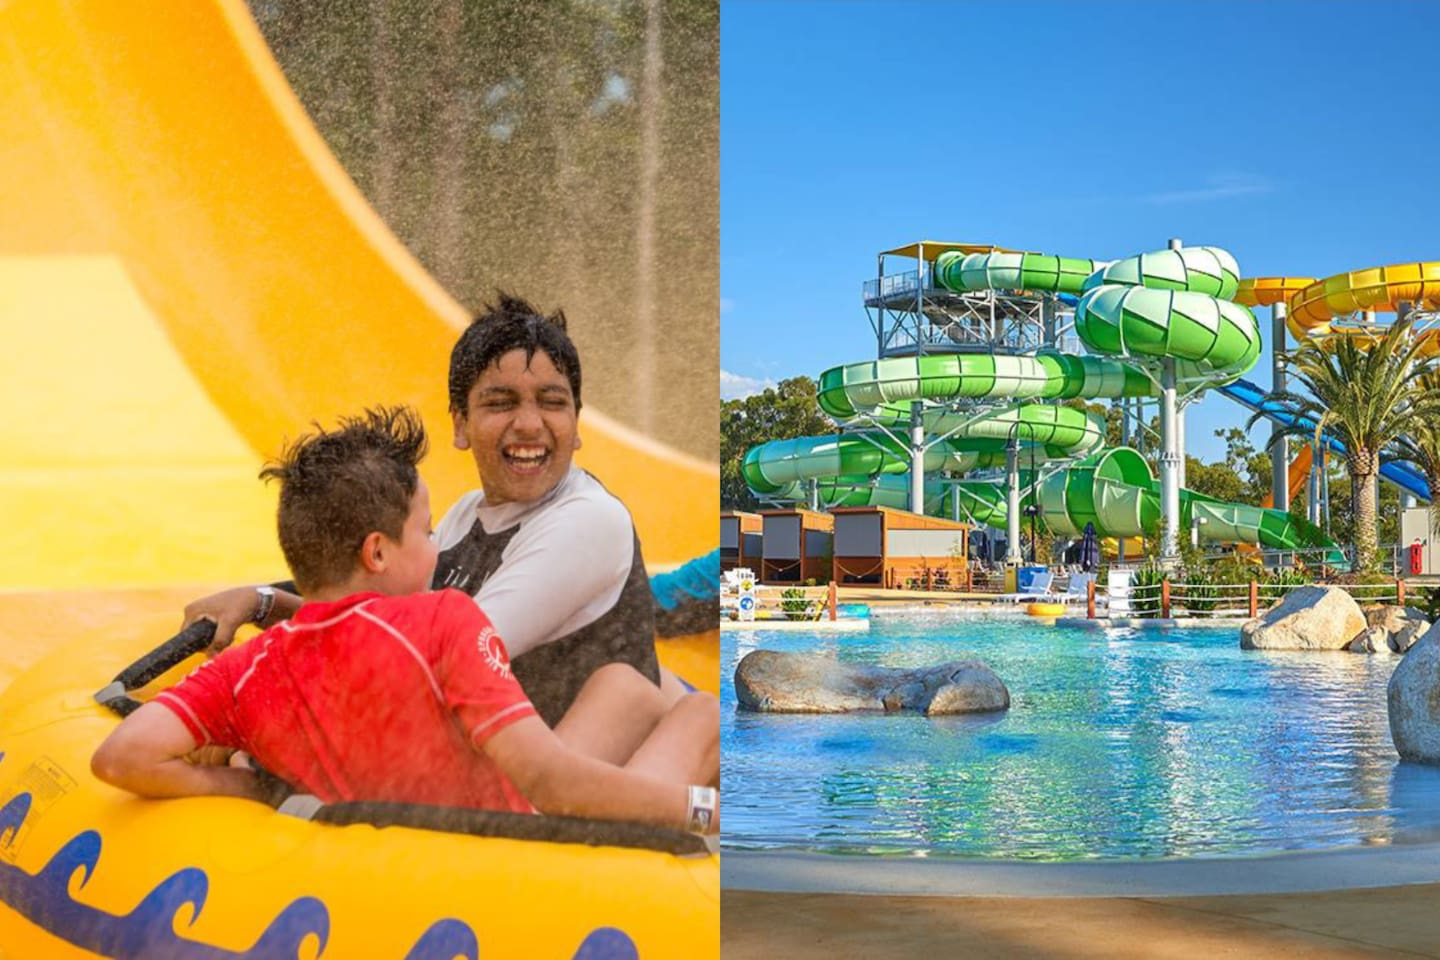 15 minutes by car: Gumbuya World is perfect in any season offering a variety of activities throughout the year.